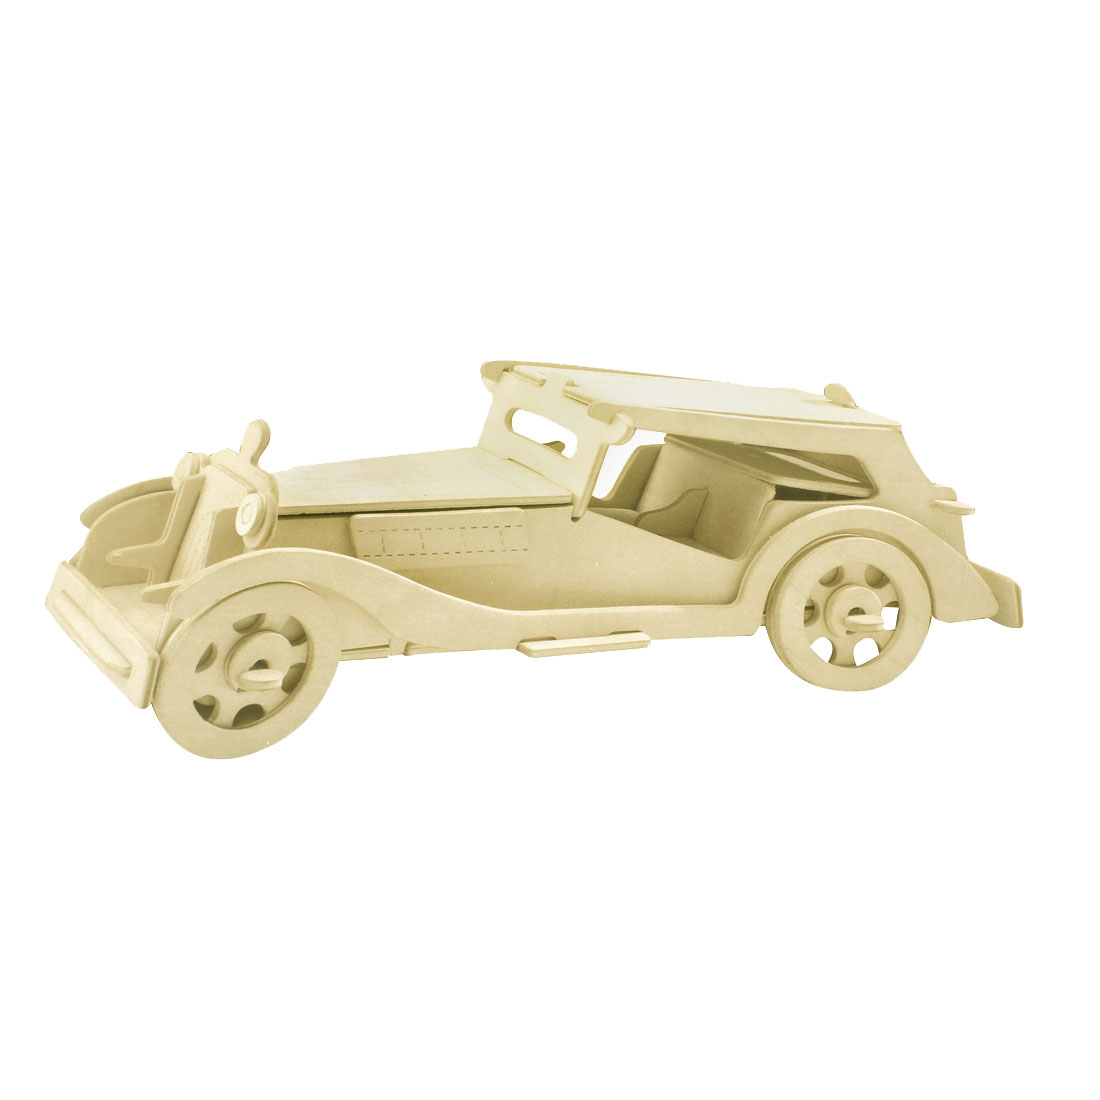 Cubic Rolling Automobile Tourer Two Seats Car Model Wooden Puzzle Toy